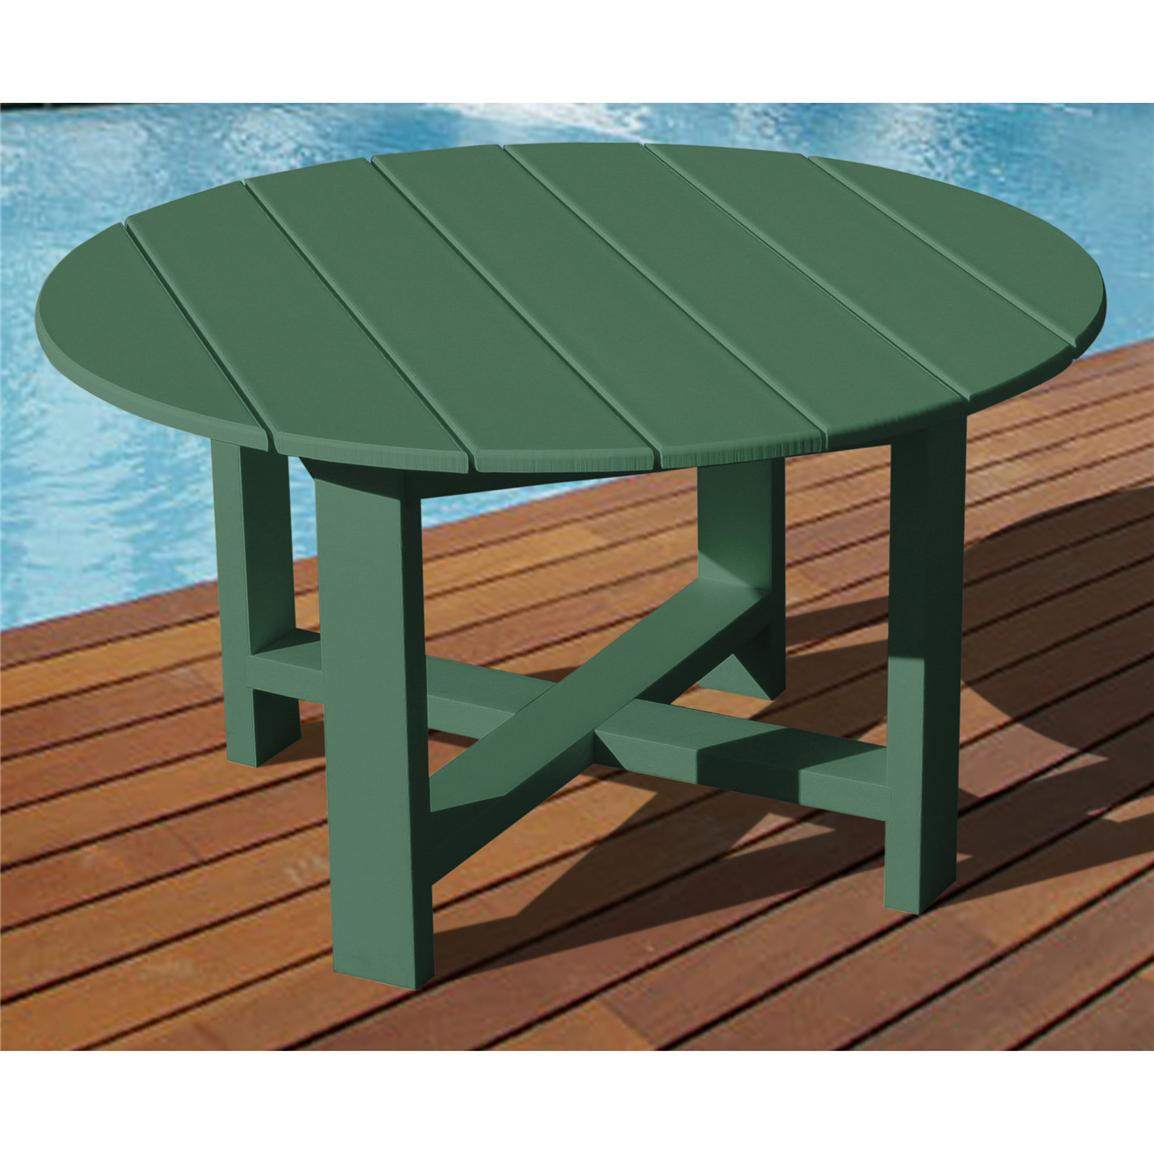 "Best ideas about Recycled Plastic Patio Furniture . Save or Pin VIFAH Recycled Plastic 40"" Outdoor Conversation Table Now."